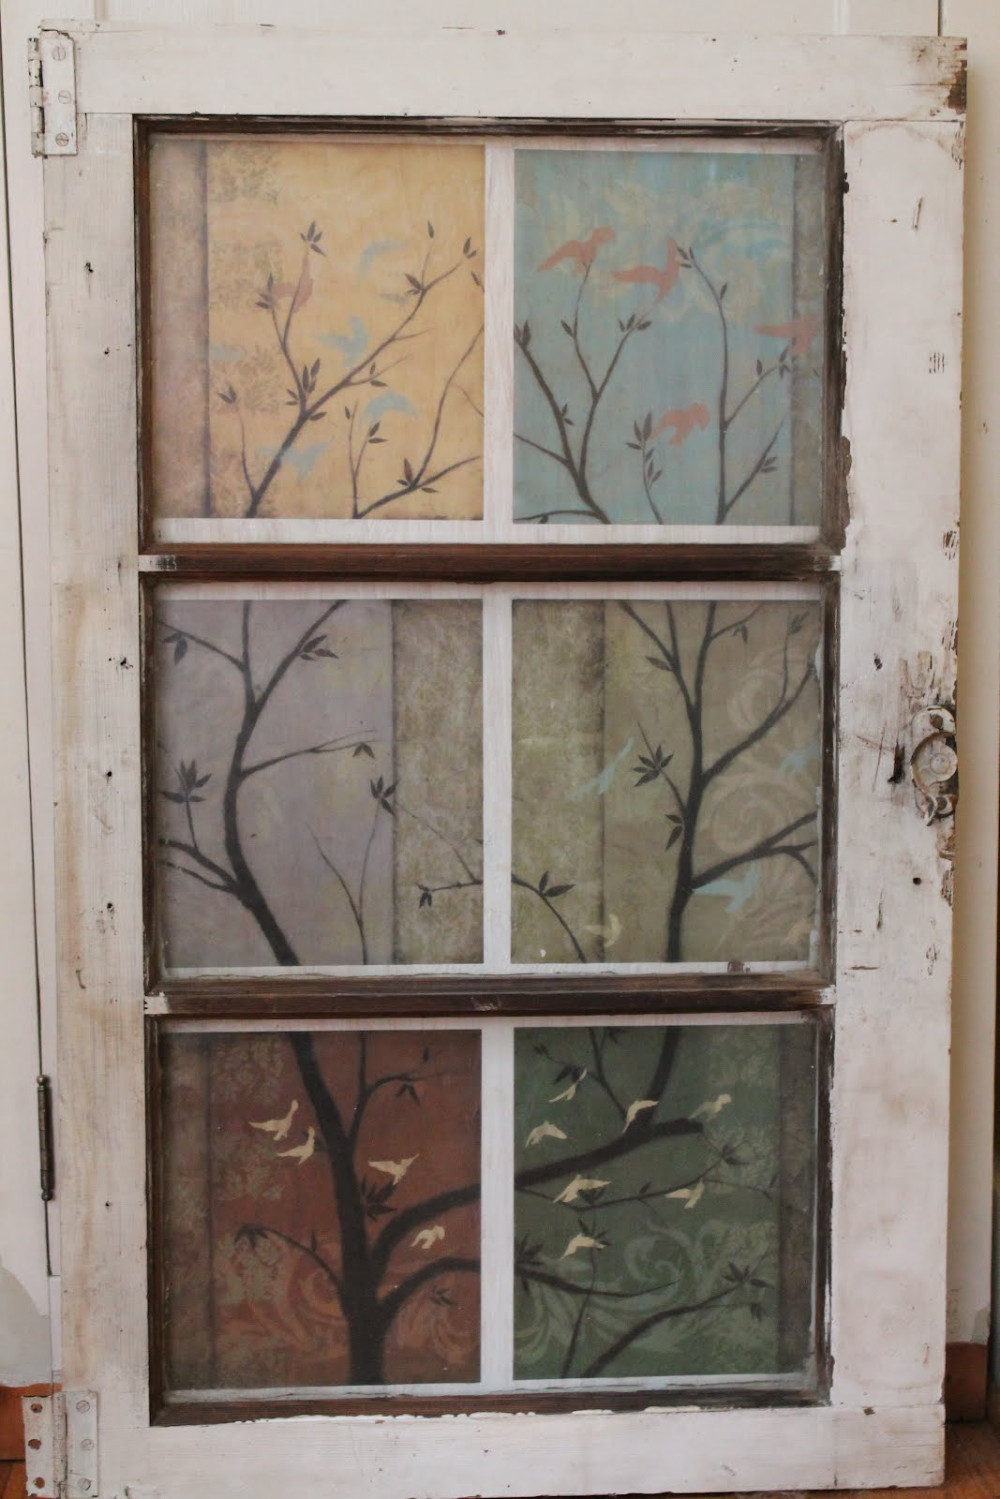 Line Drawings 9 Cheap Ways To Decorate Old Window Frames Wood Window Frame Old Window Frame